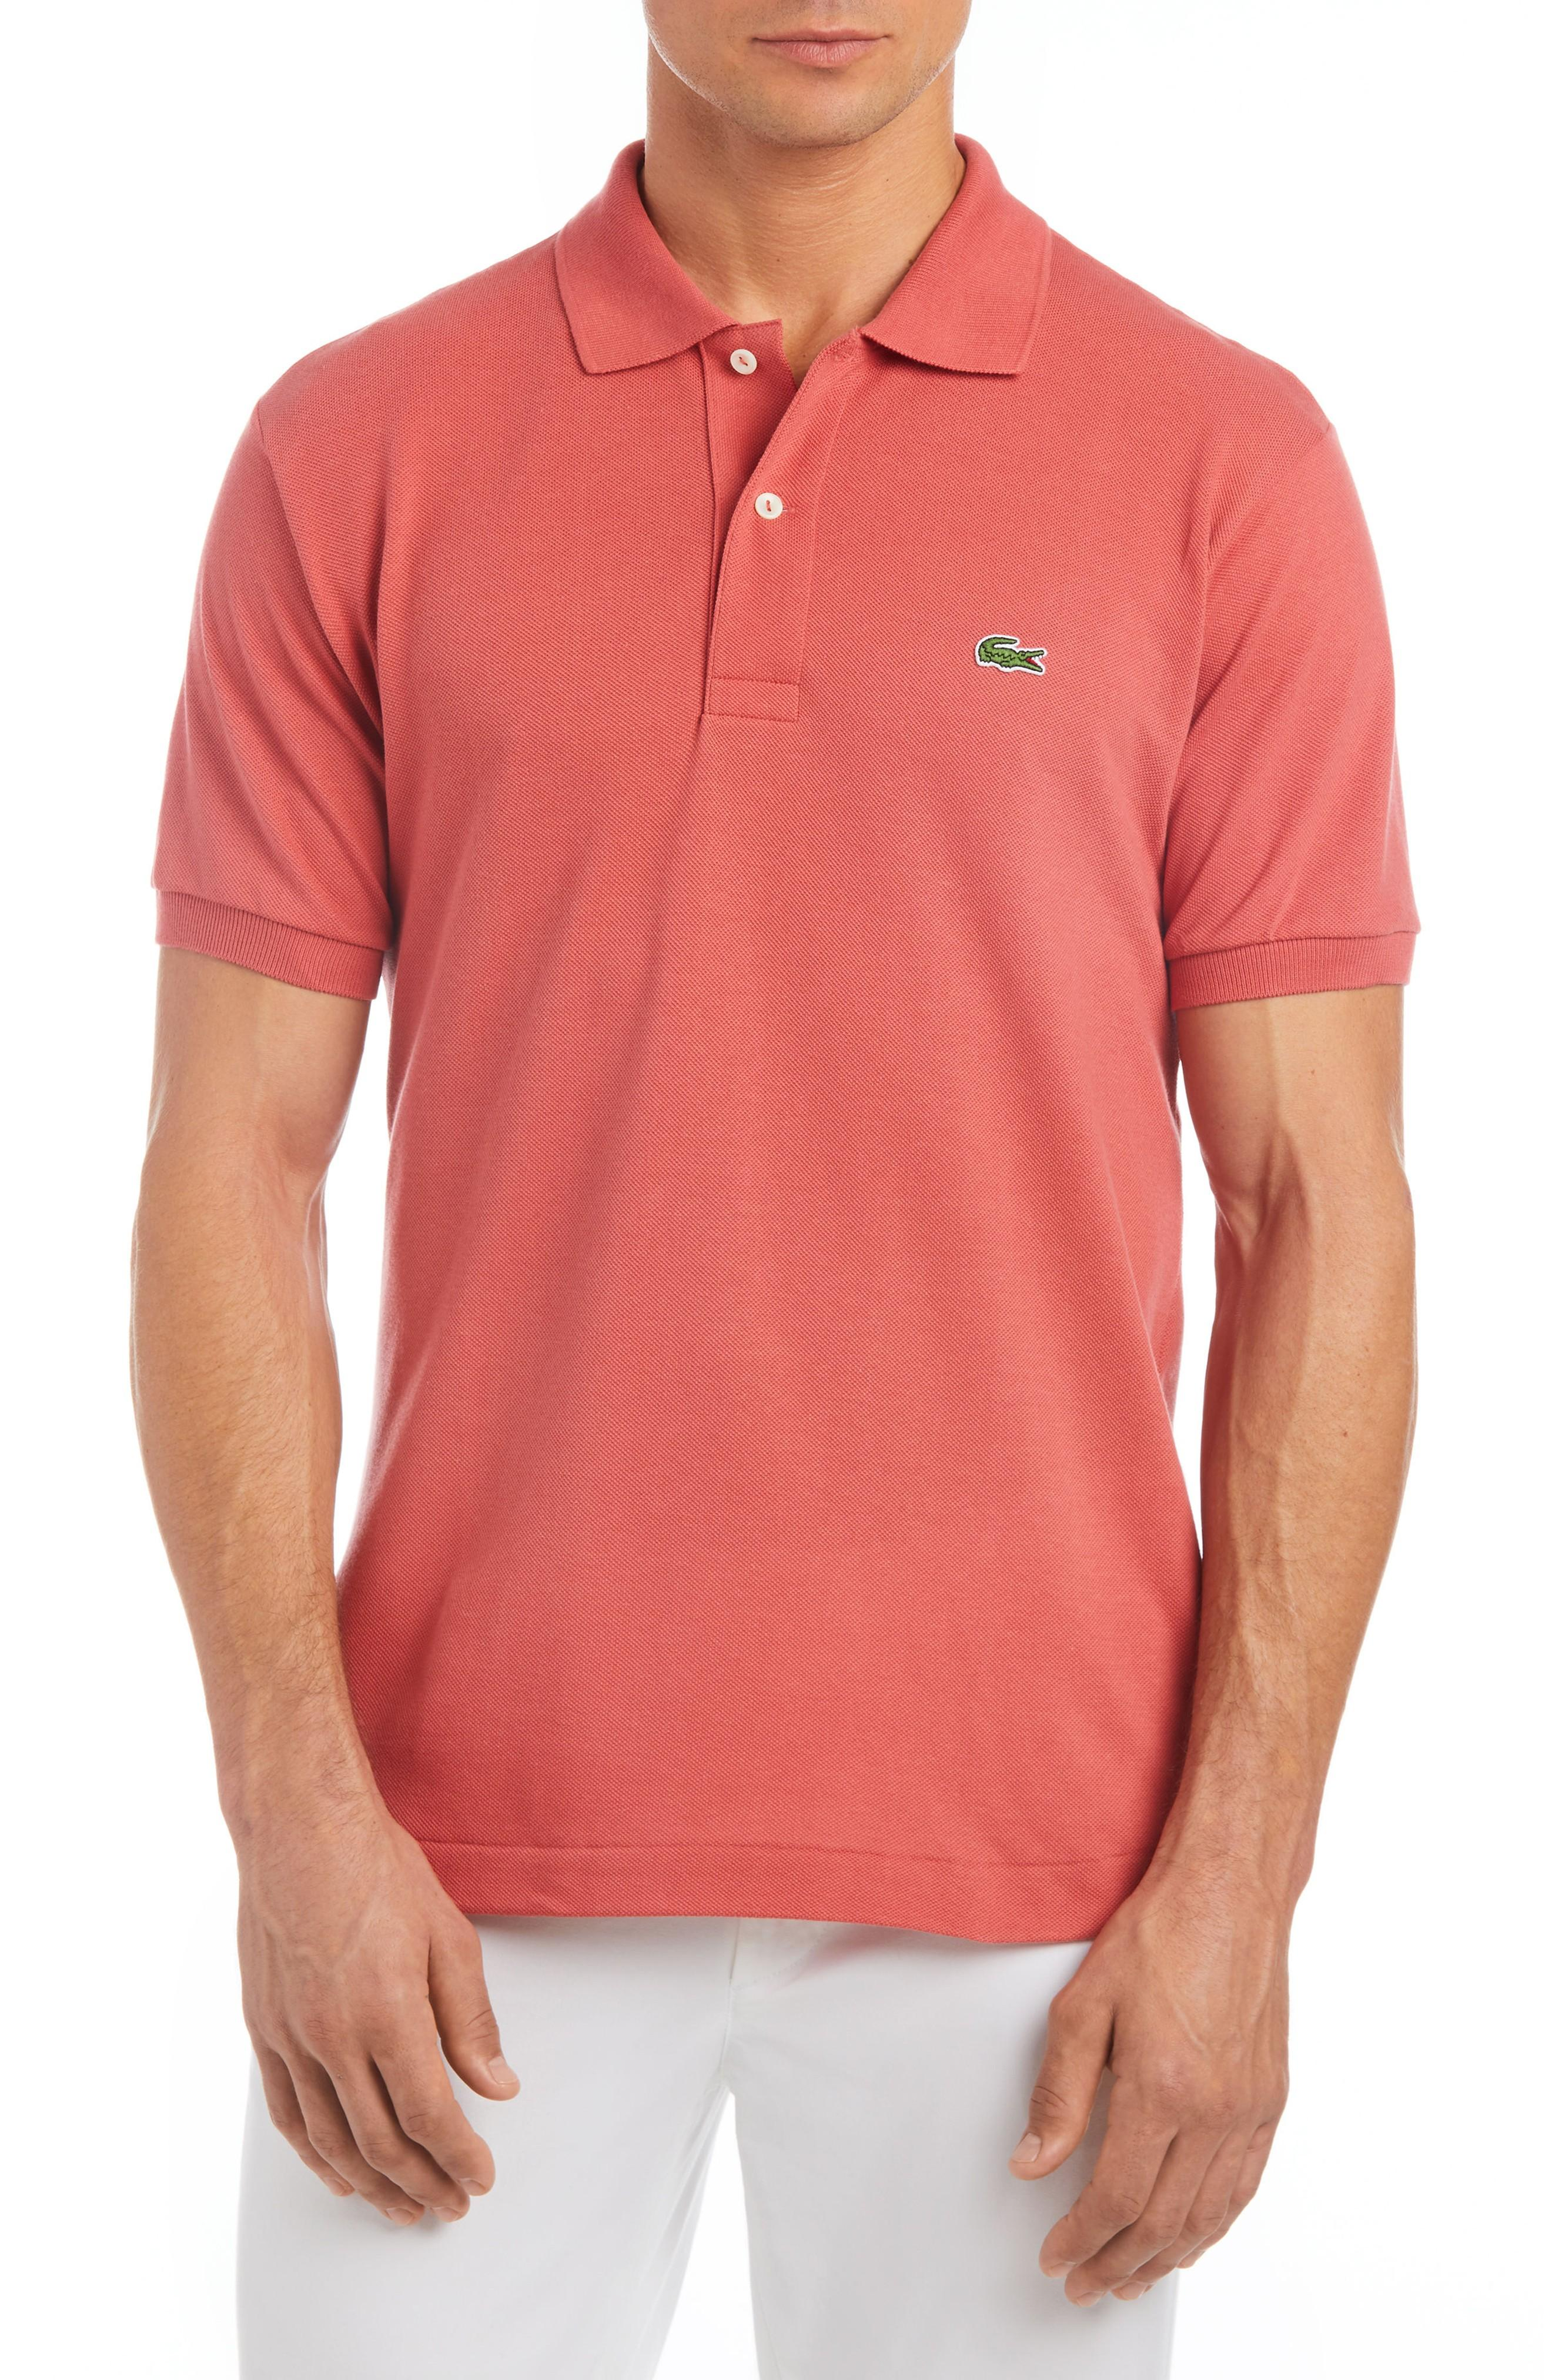 1d703593d45d Lacoste Short Sleeve Pique Polo Shirt - Classic Fit In Sierra Red ...